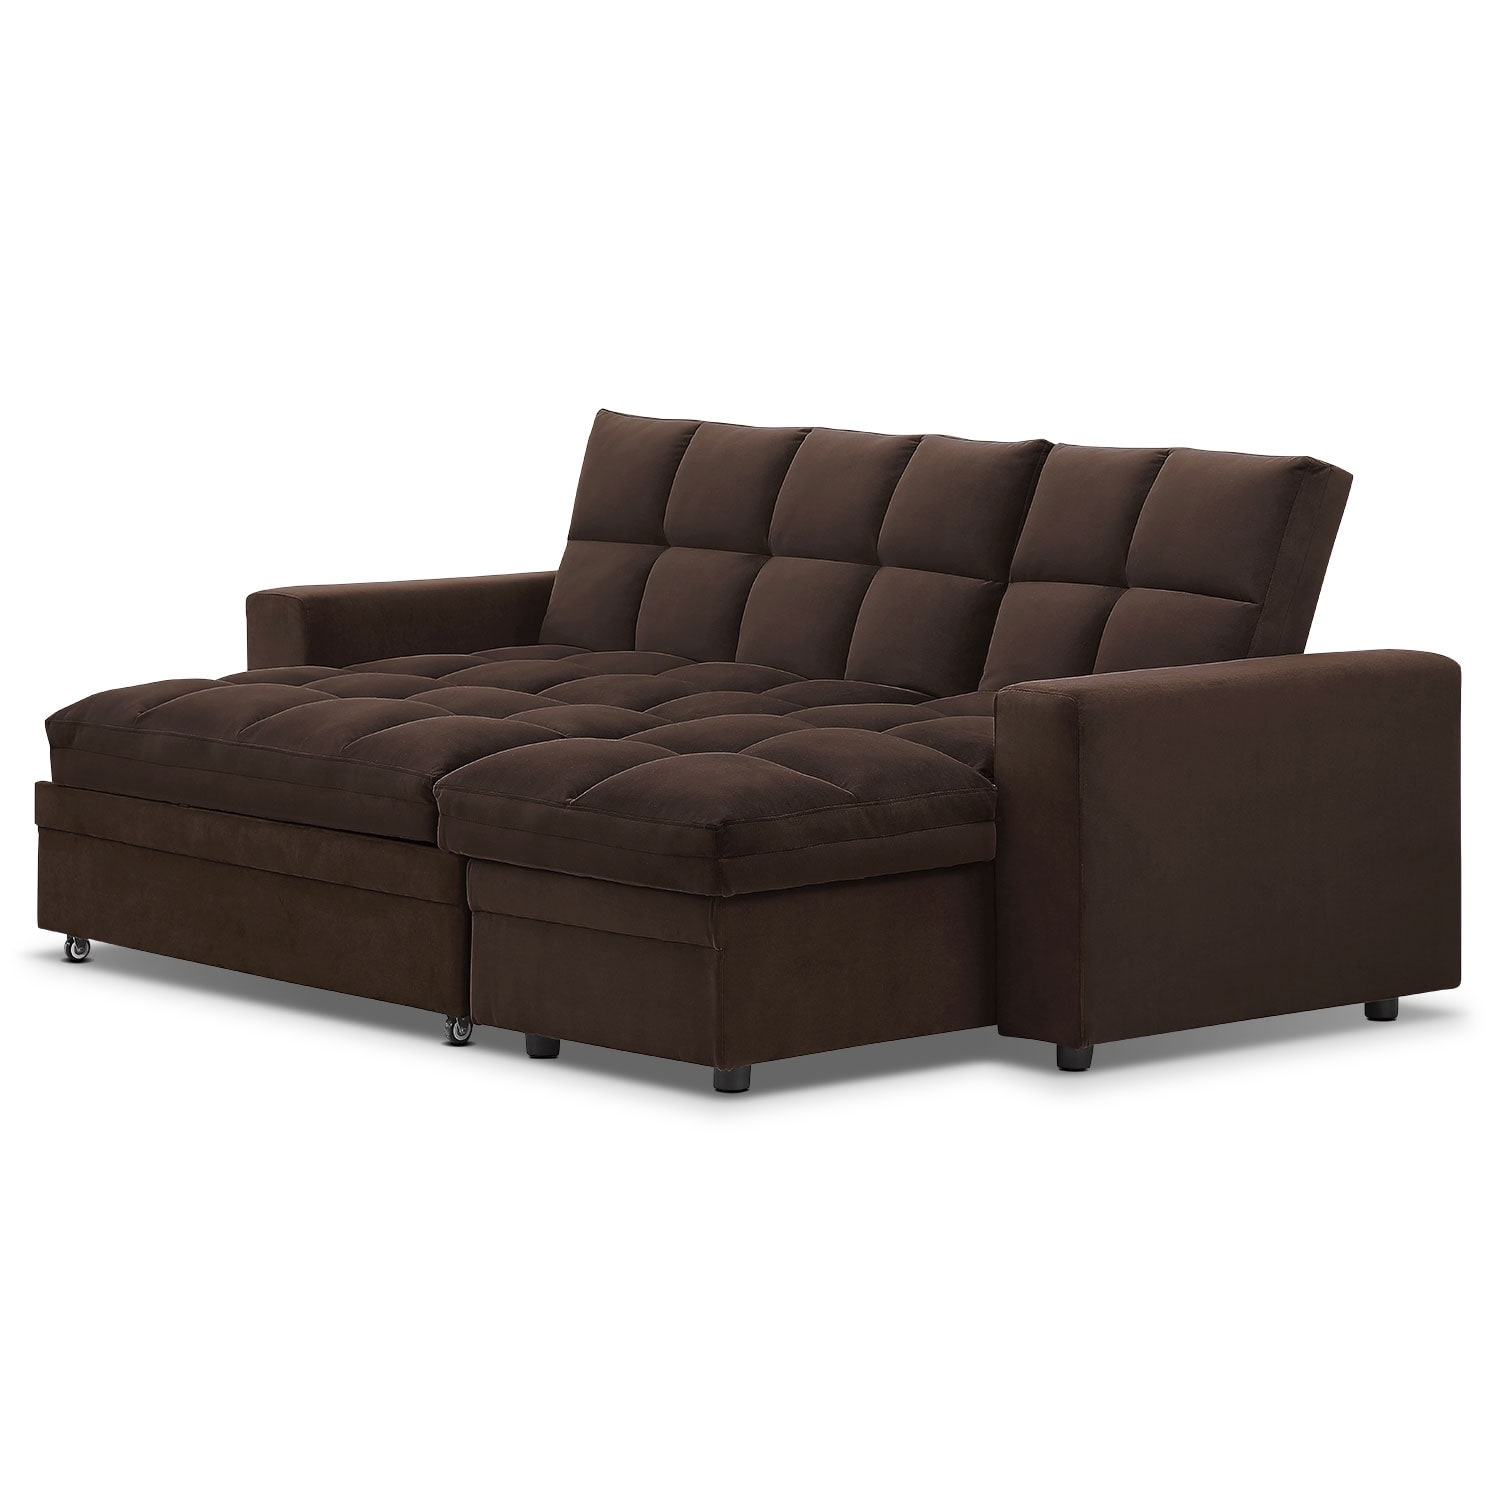 Metro Chaise Sofa Bed With Storage Brown Value City Furniture And Mattresses